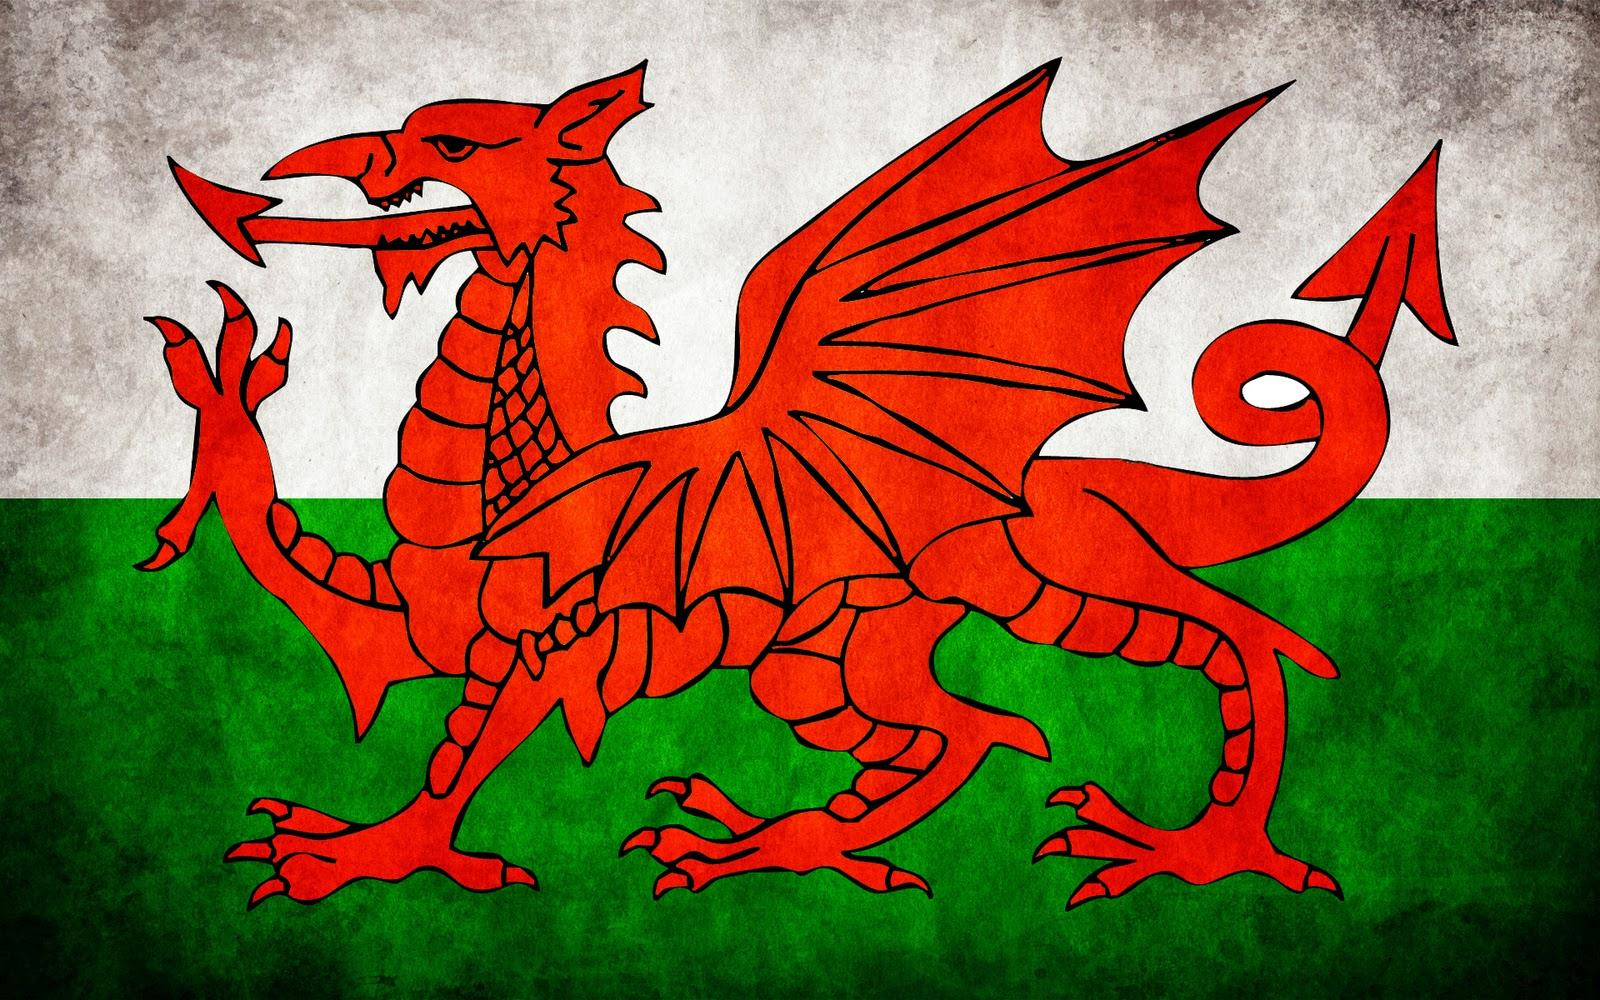 Wales National Football Team 2015 The Dragons HD Desktop Wallpapers